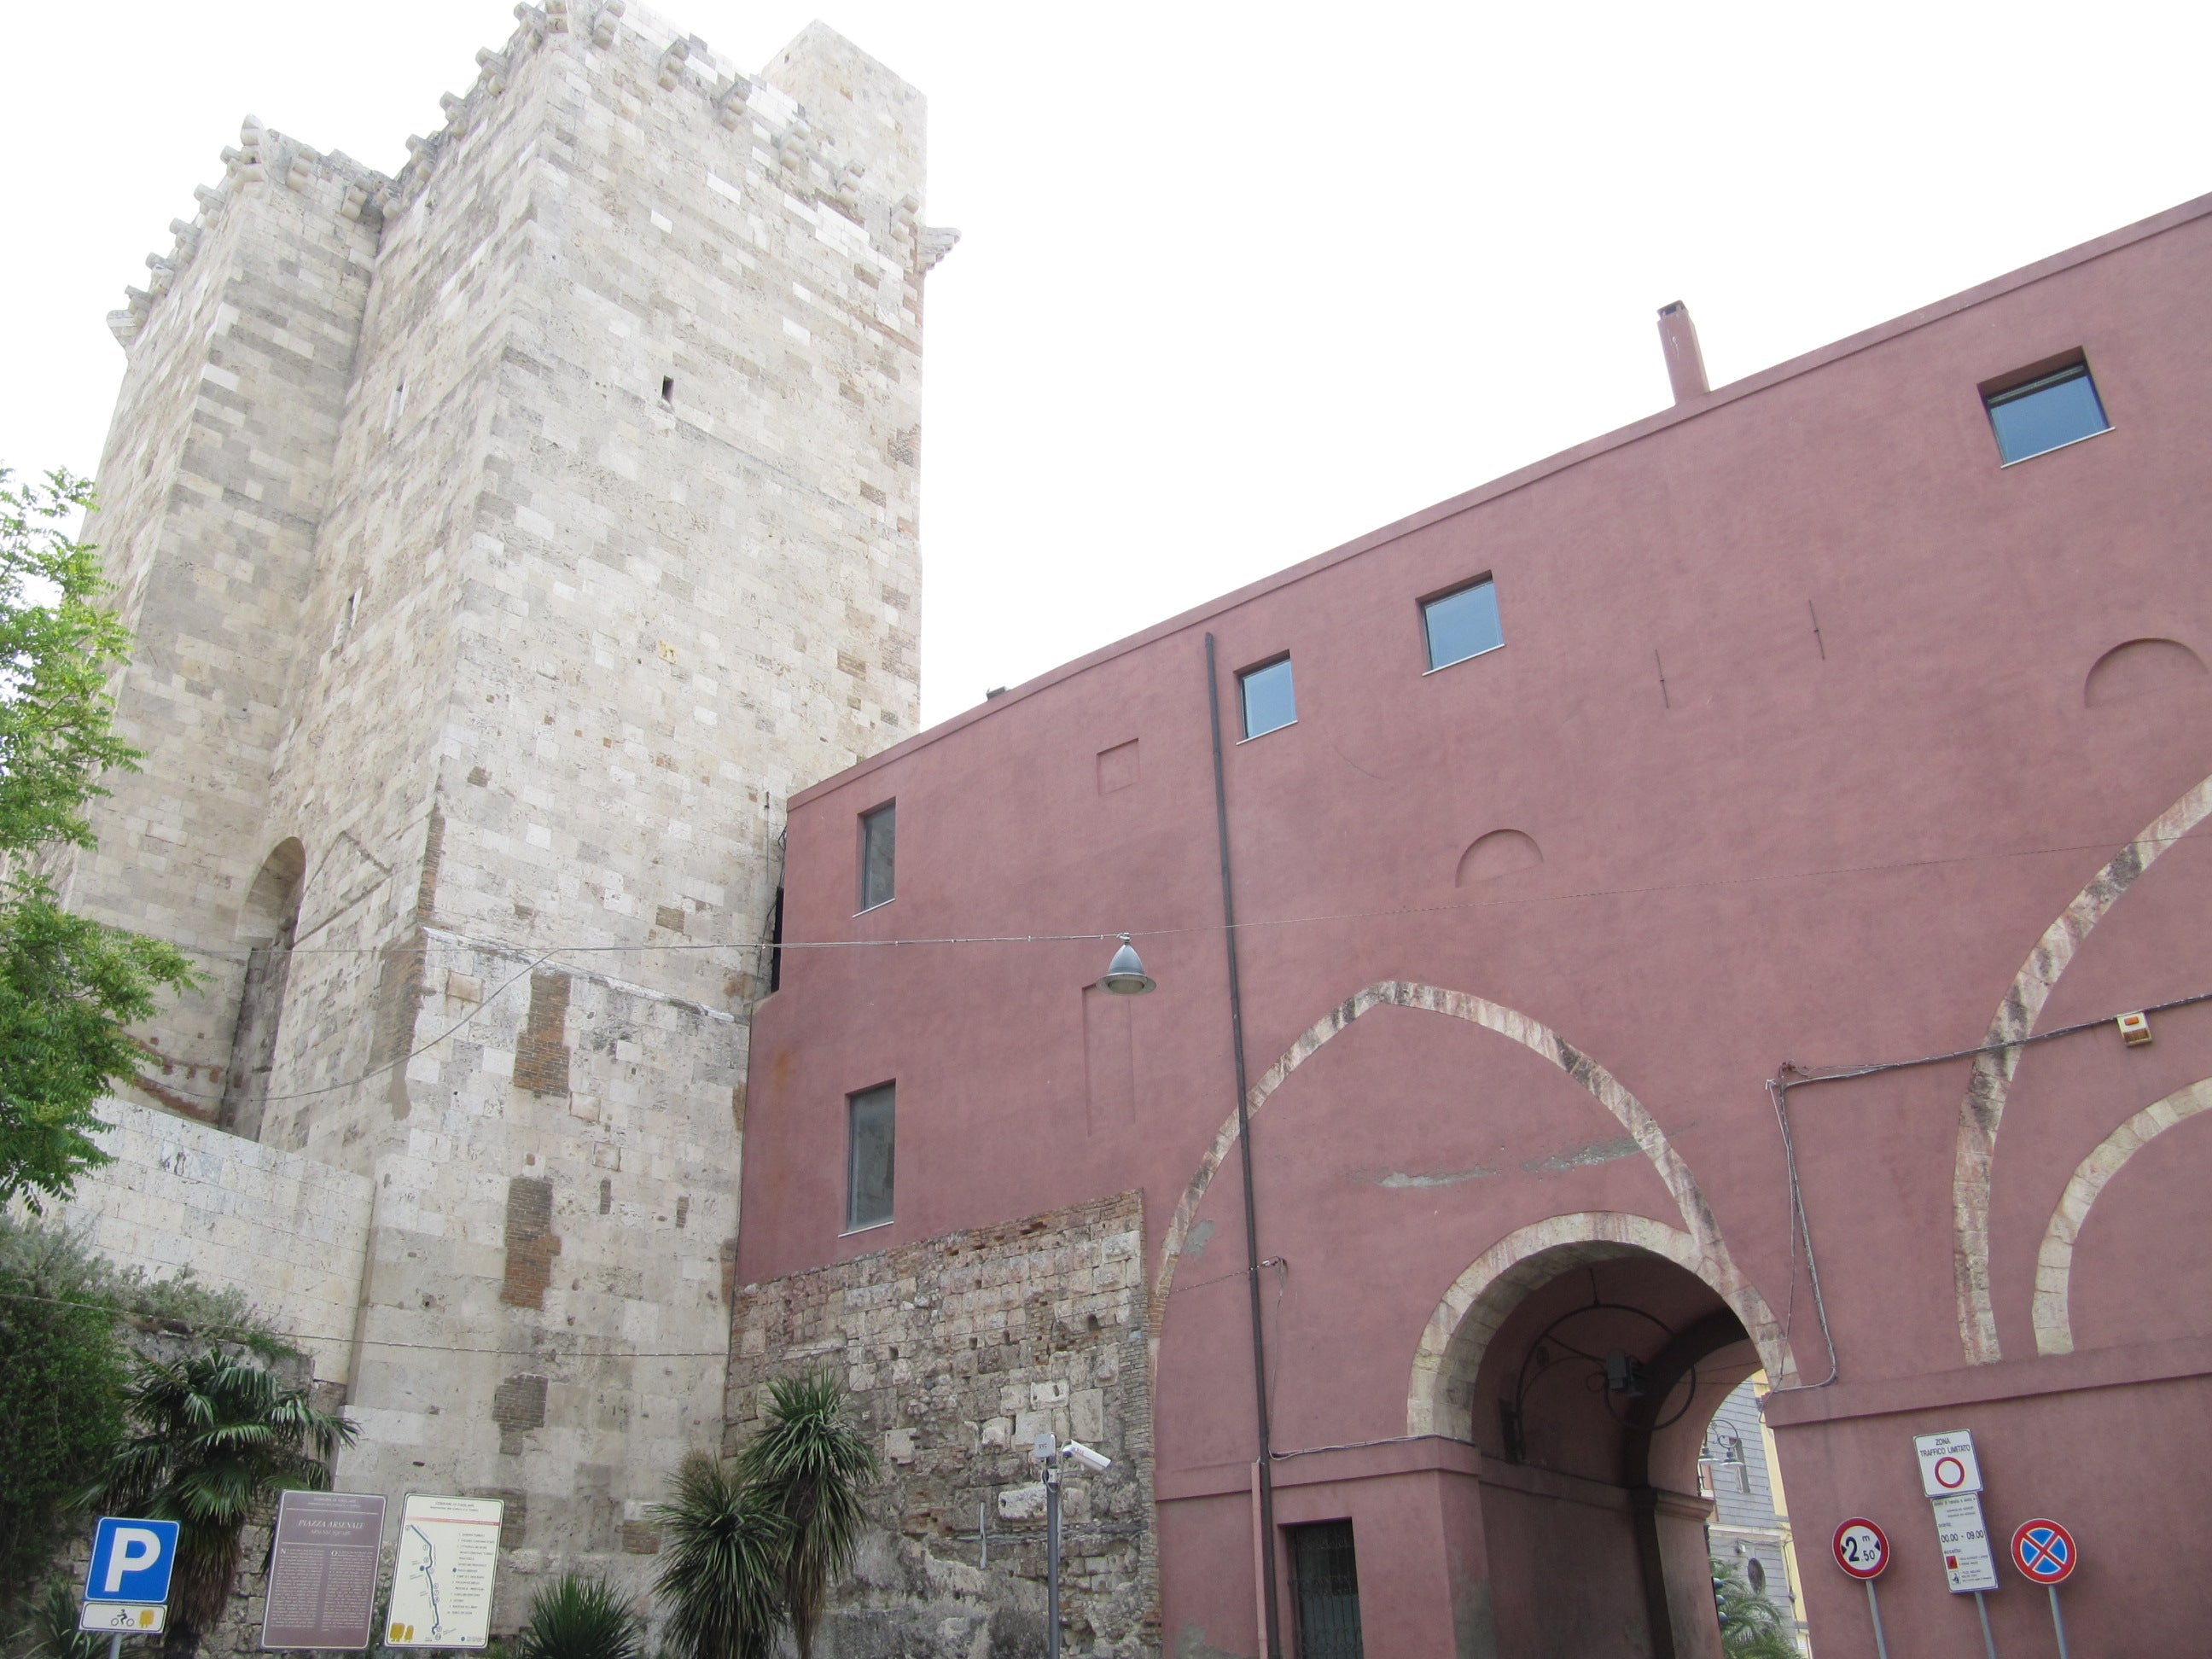 Letto A Castello A Cagliari.Torre Di San Pancrazio In Cagliari 4 Reviews And 6 Photos